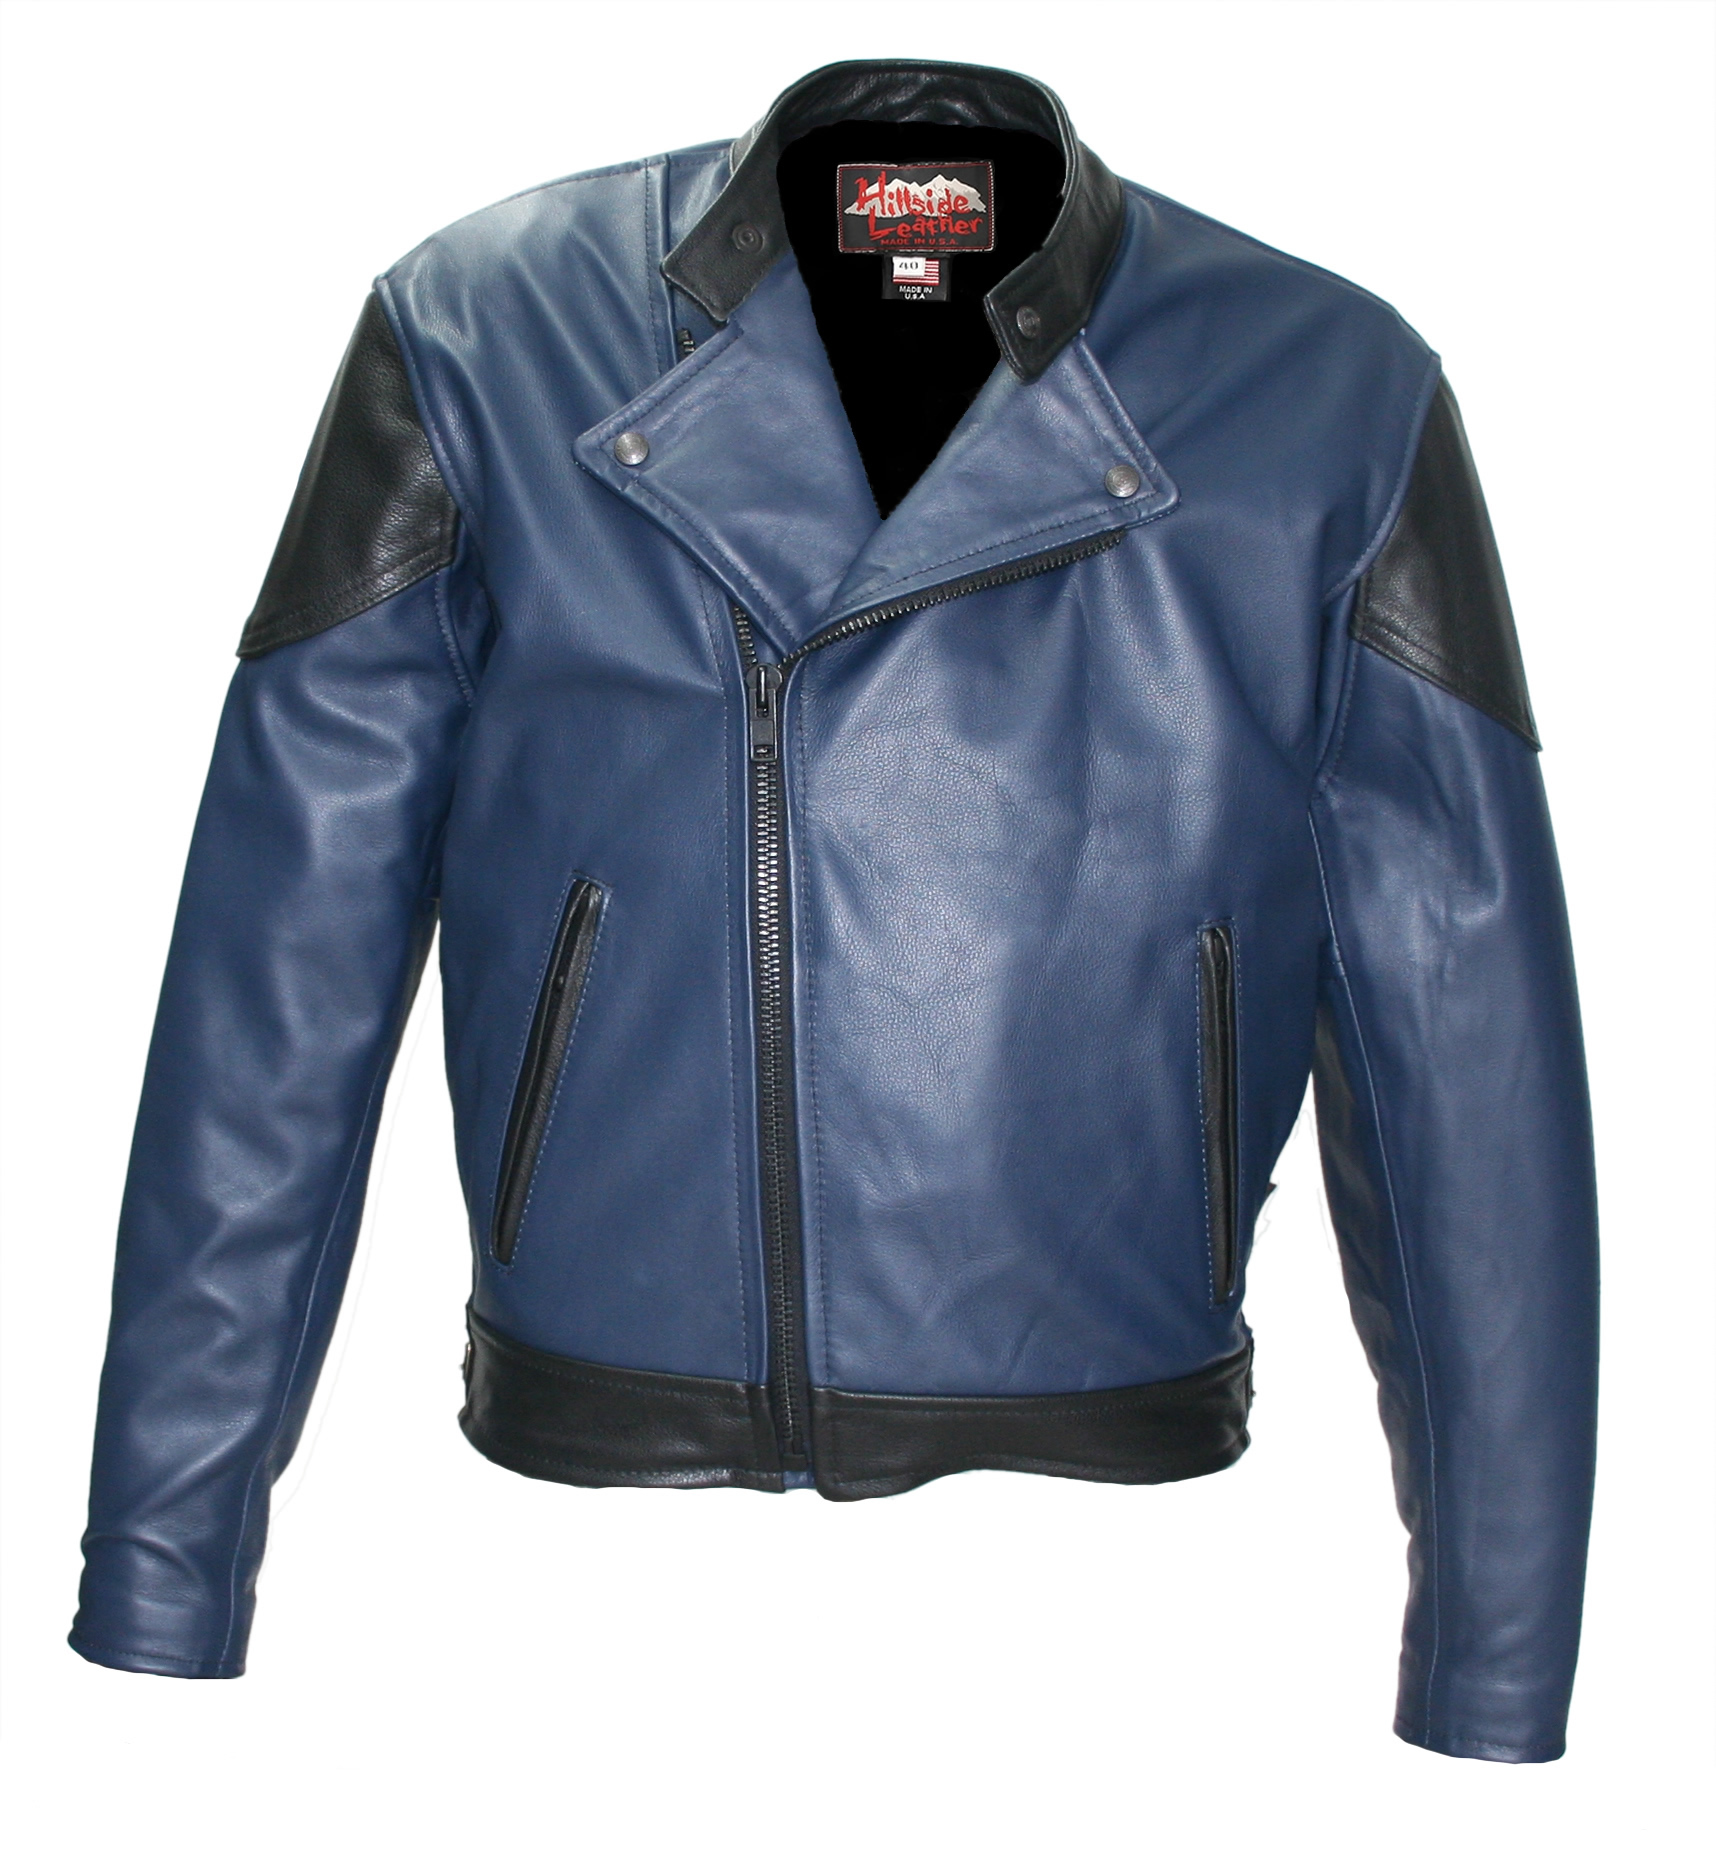 Hybrid Biker Jacket  Two Tone (Navy Blue/Black)